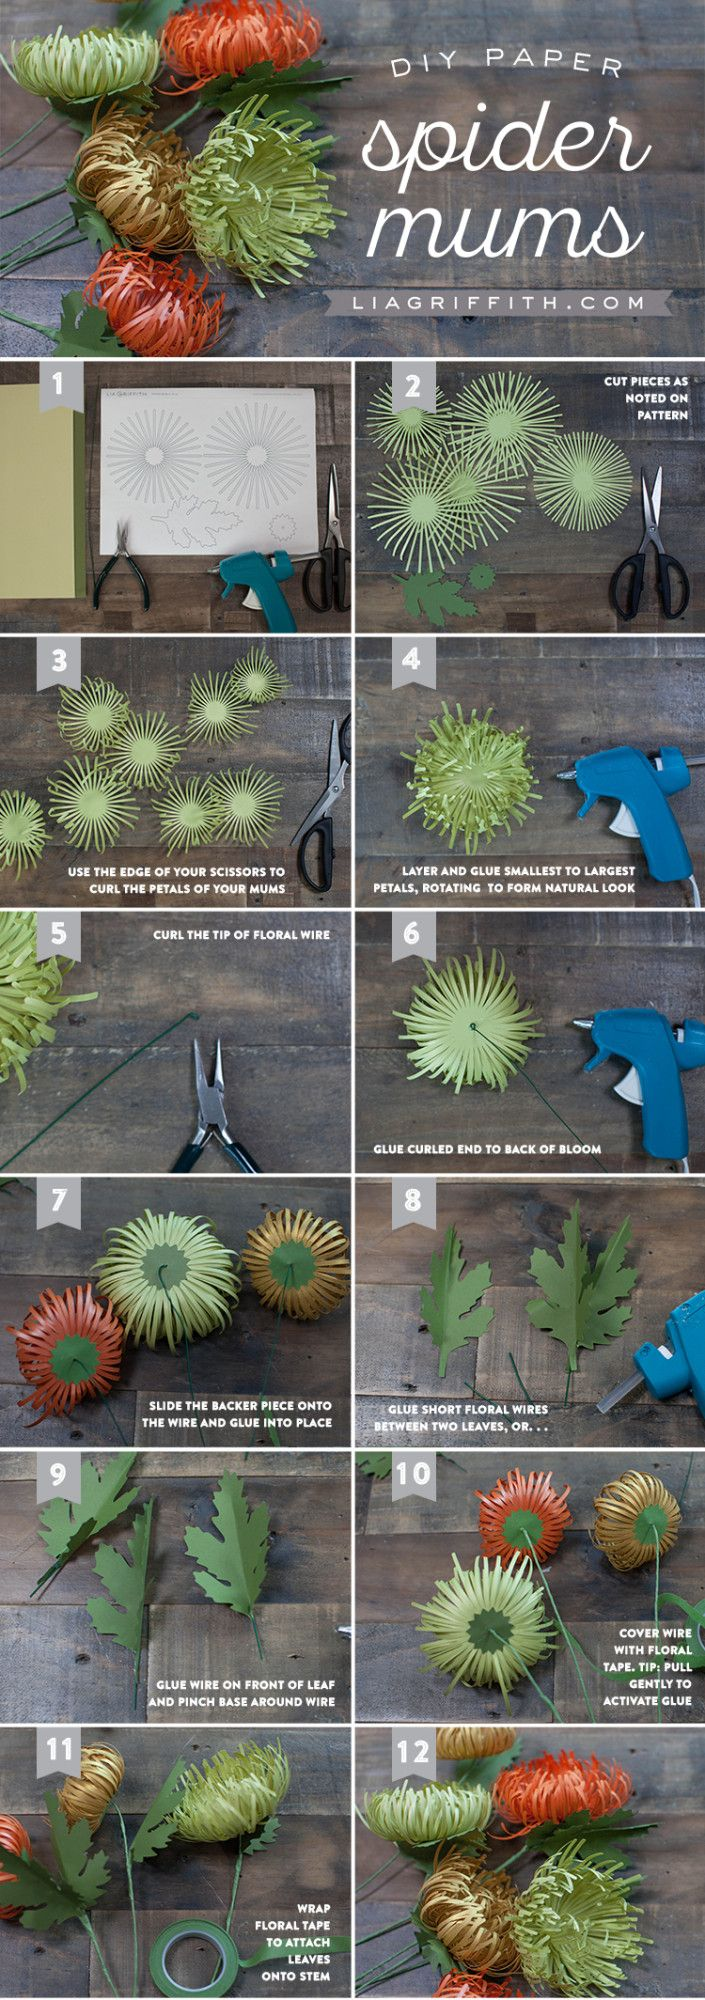 287 Best Flowers Images On Pinterest Giant Paper Flowers Giant